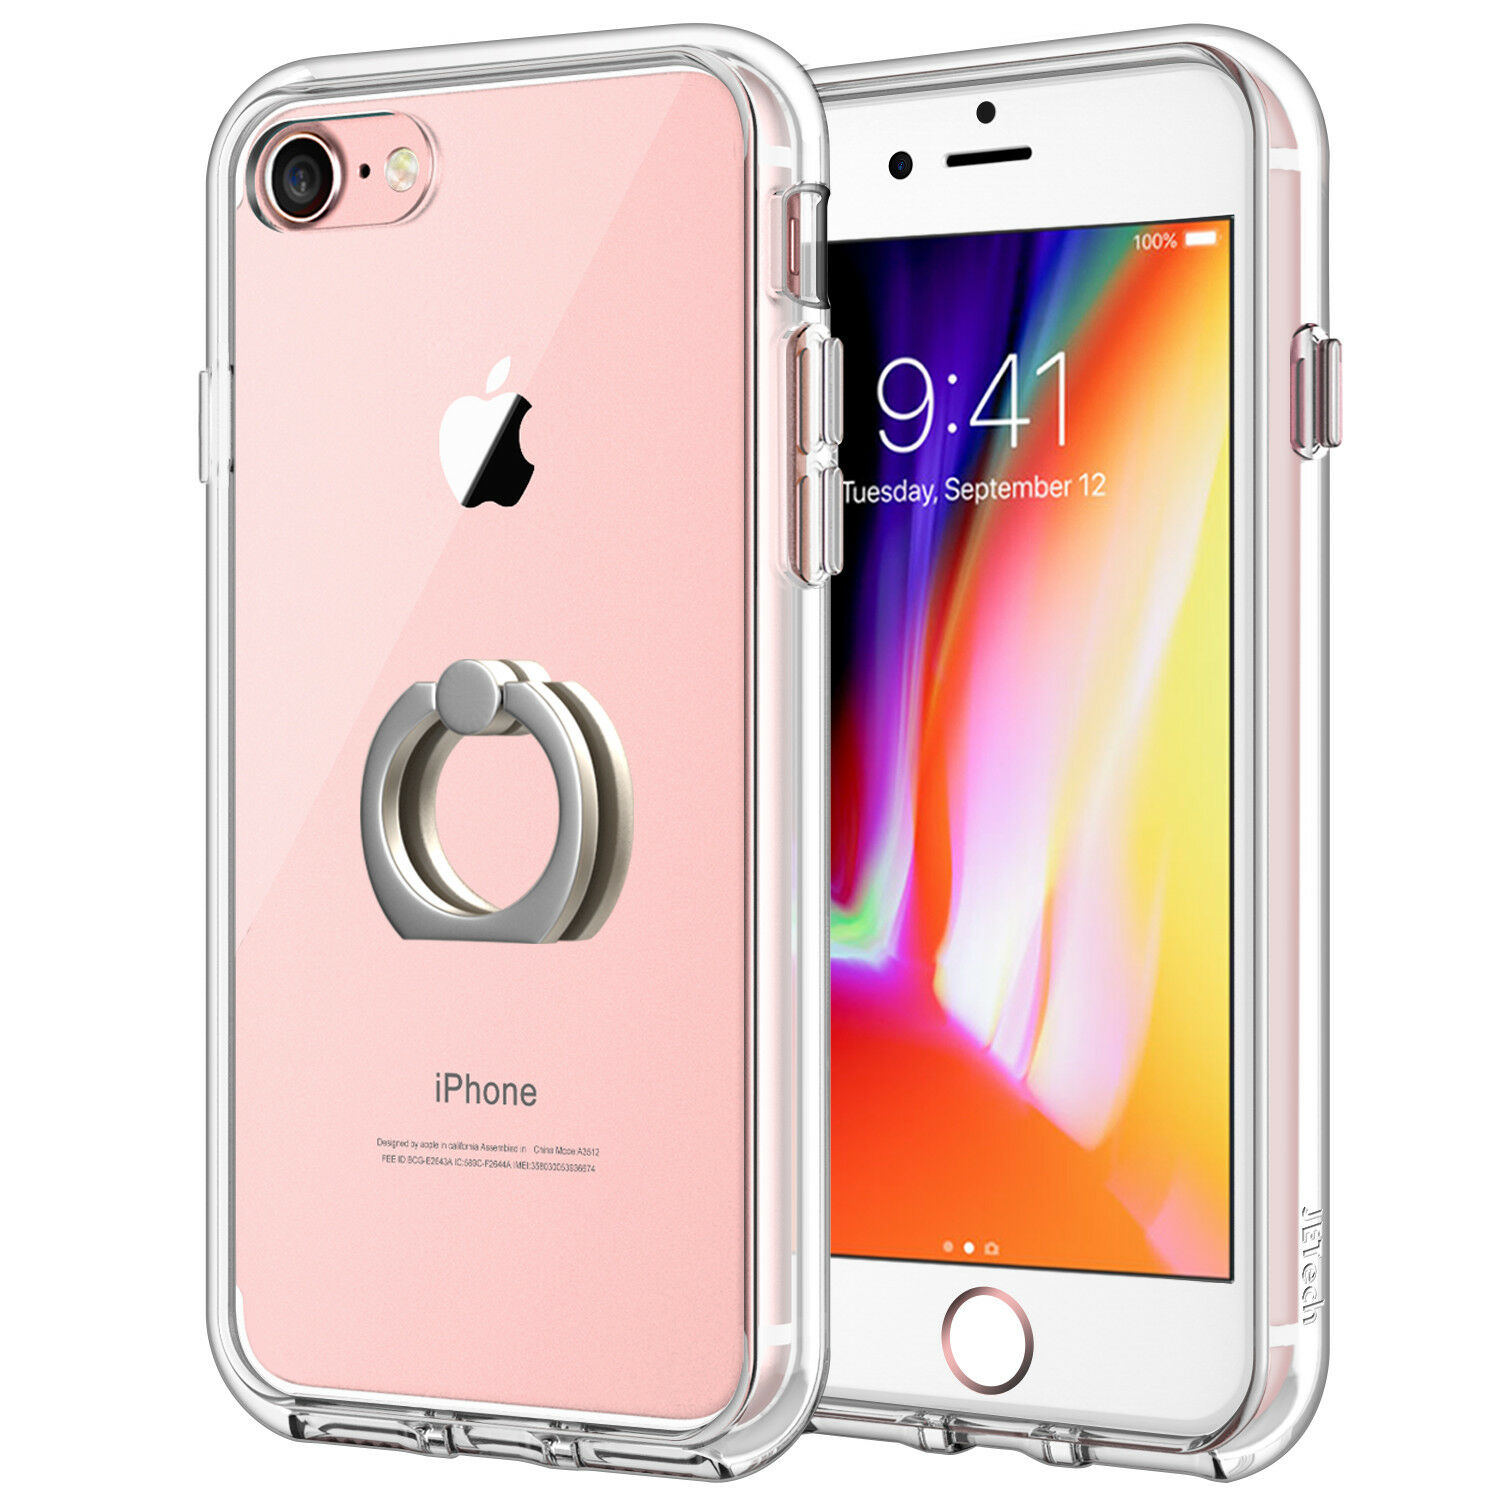 JETech Case for iPhone 8 and iPhone 7 Shockproof Bumper Cove